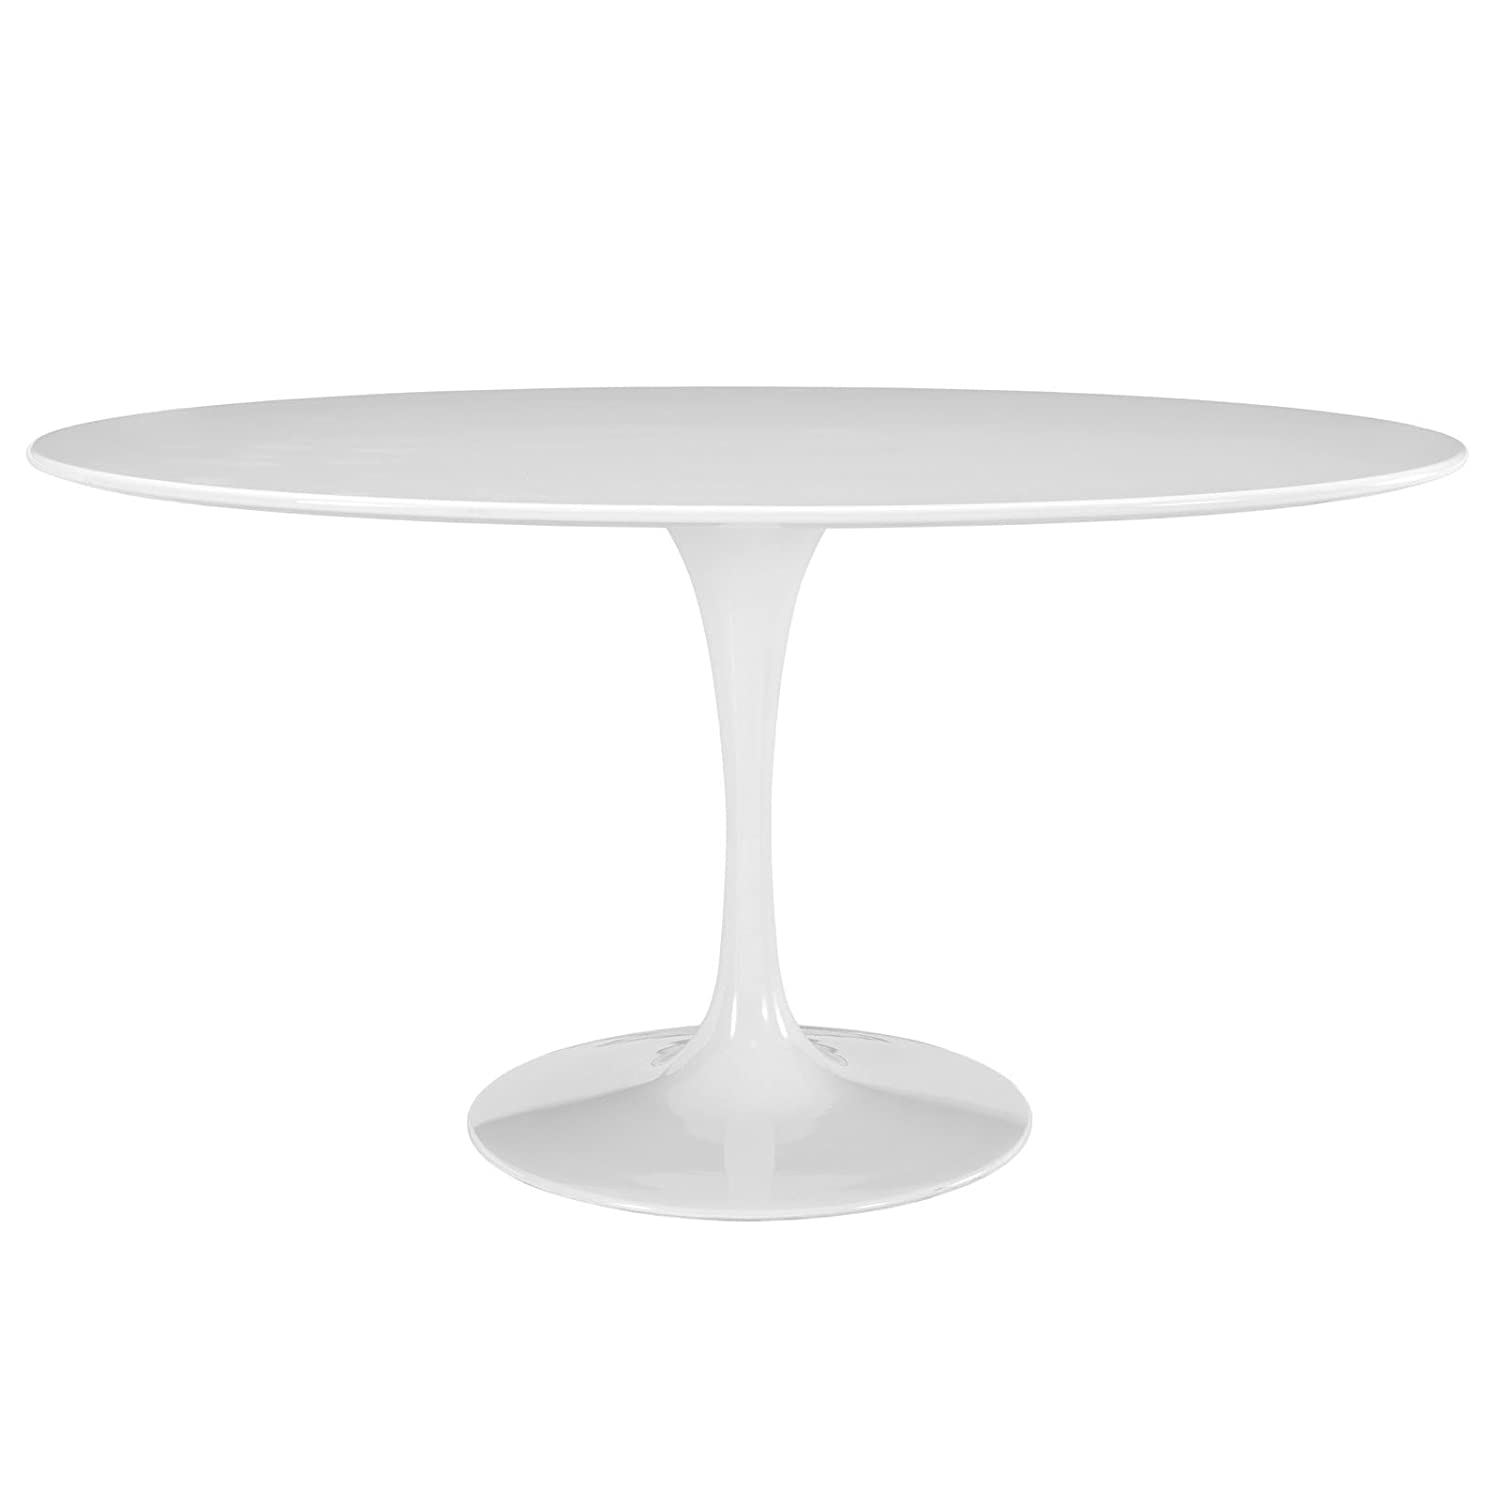 "Modway Lippa 60"" Mid-Century Modern Kitchen and Dining Table with Oval Top and Pedestal Base in White"